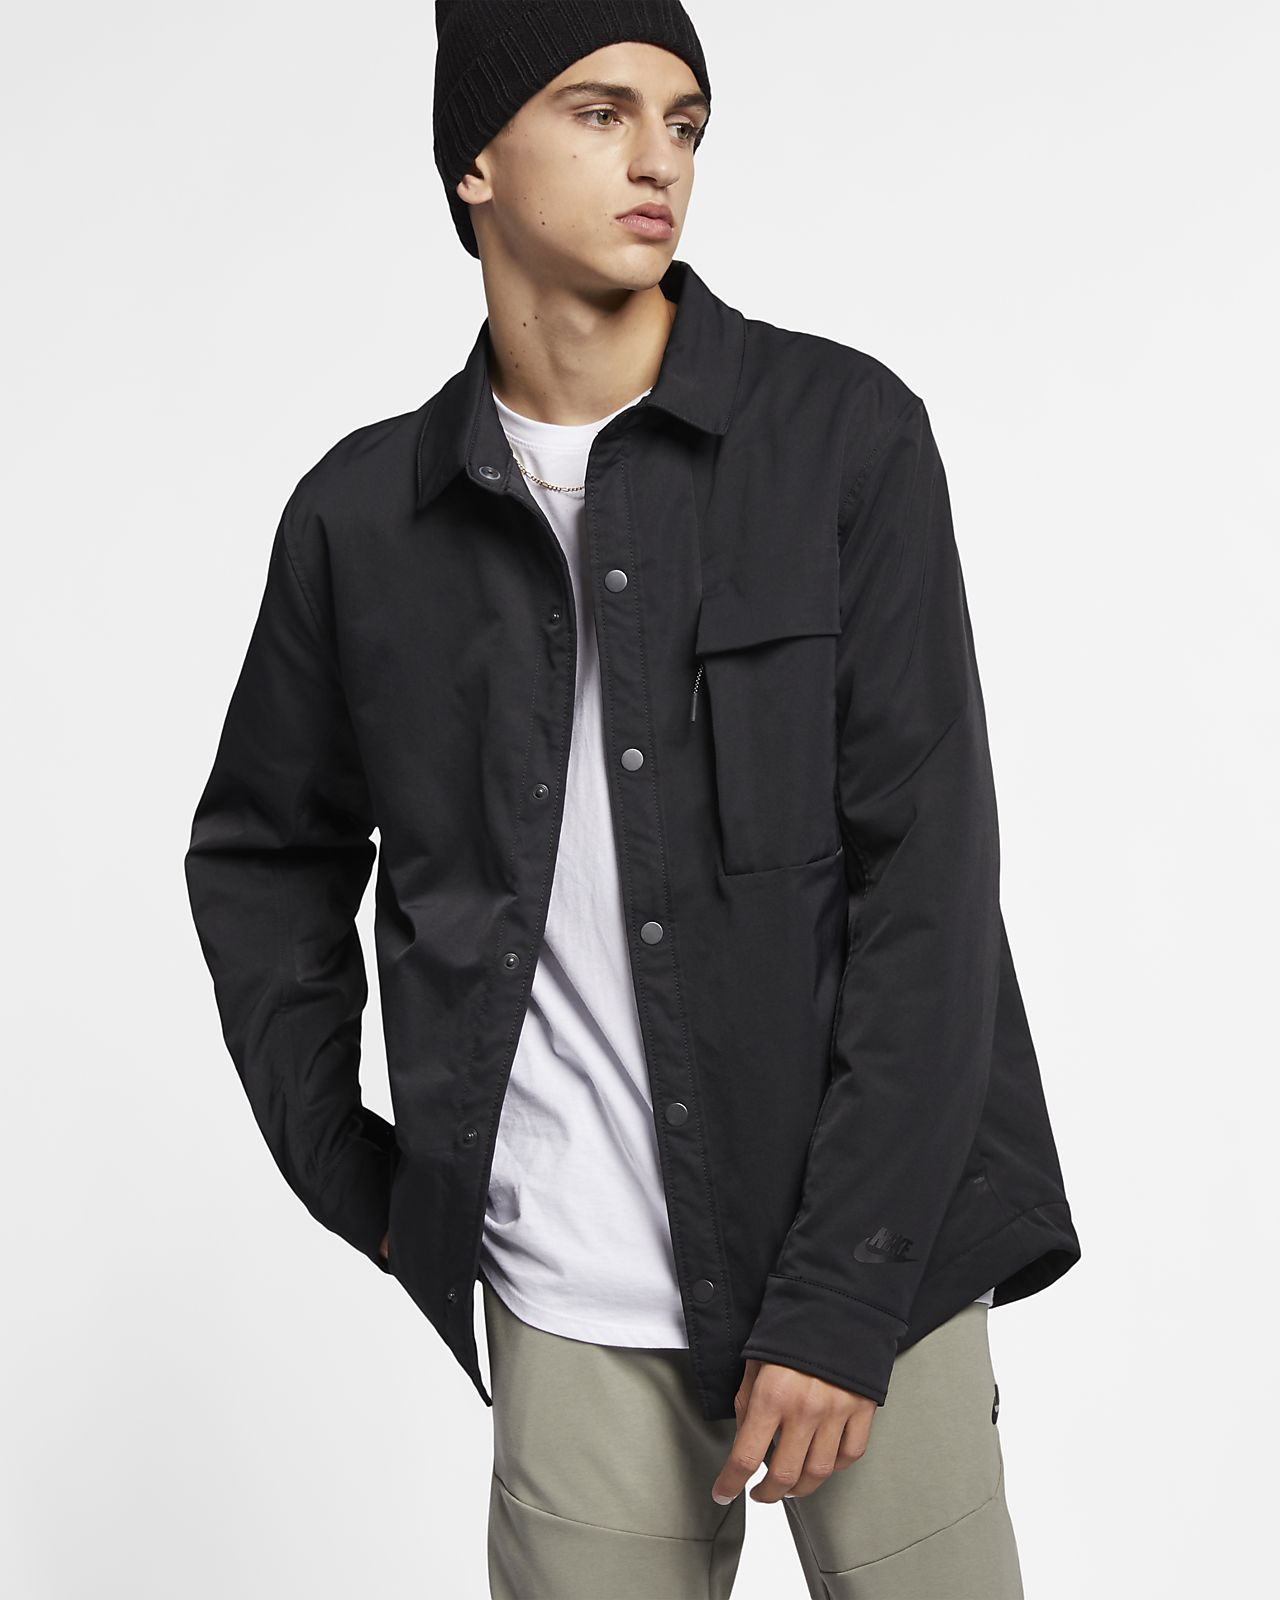 e1d3ee23d006 Low Resolution Nike Sportswear Men s Insulated Jacket Nike Sportswear Men s Insulated  Jacket